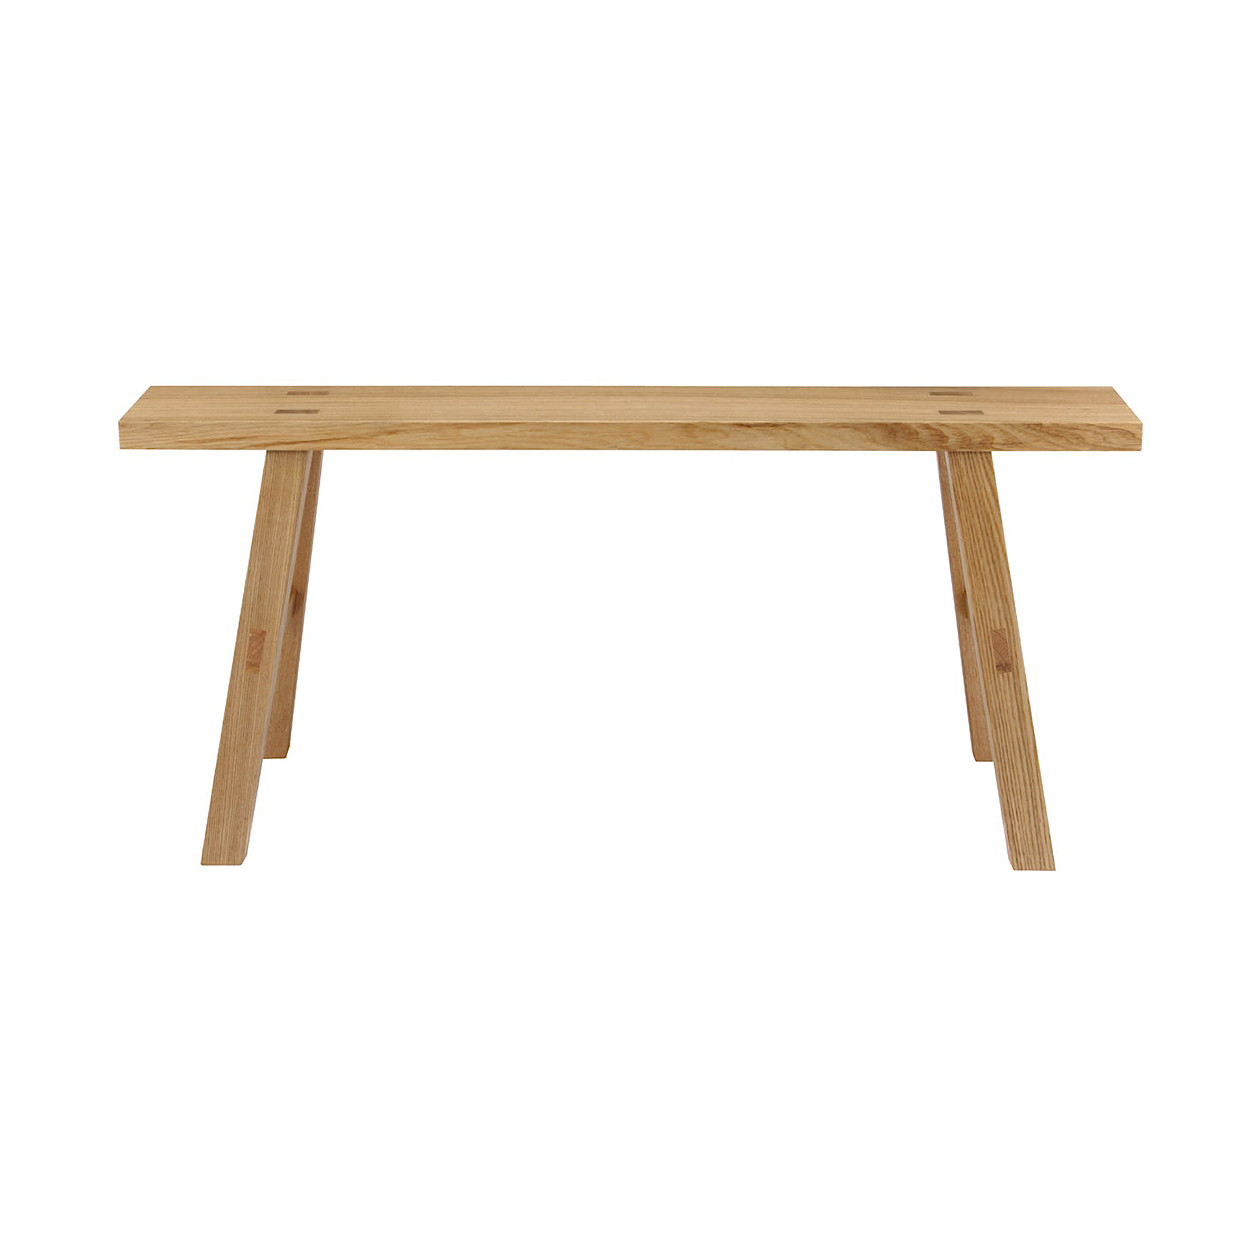 NATURAL OAK / BENCH / L